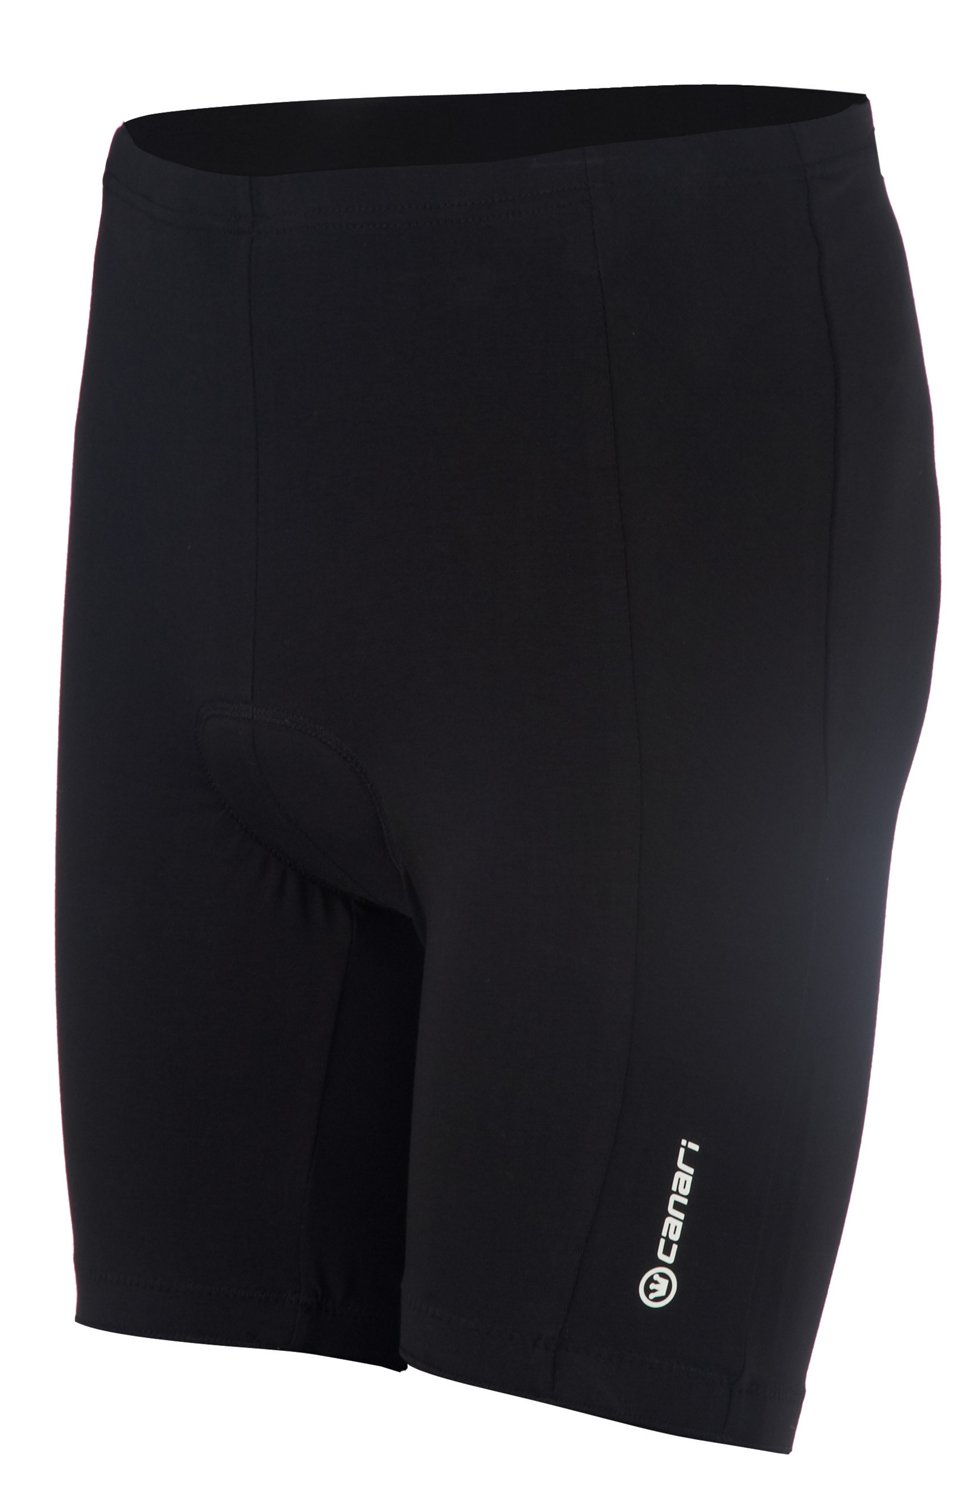 Display product reviews for Canari™ Men's Core Cycling Short